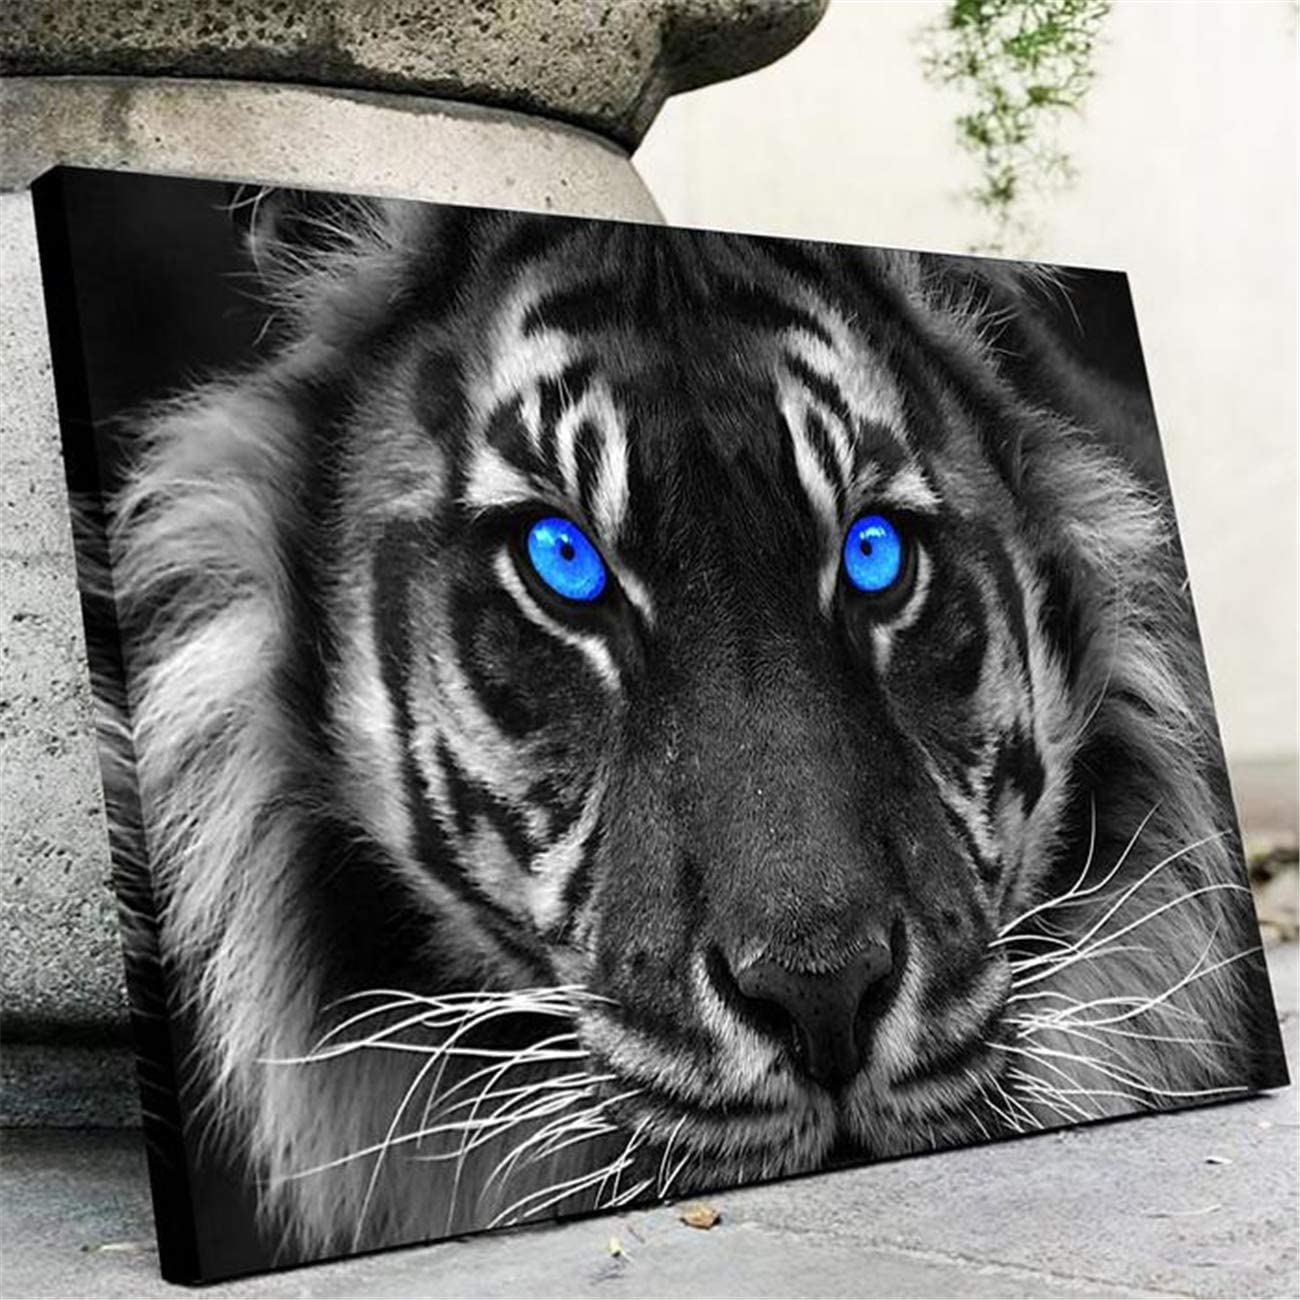 NATVVA Modern Wall Art Painting Gifts Blue Eyed Tiger Posters Art Picture Printed Canvas Artist Home Decor Artwork for Living Room Bed Room Men Wall Decoration No Frame